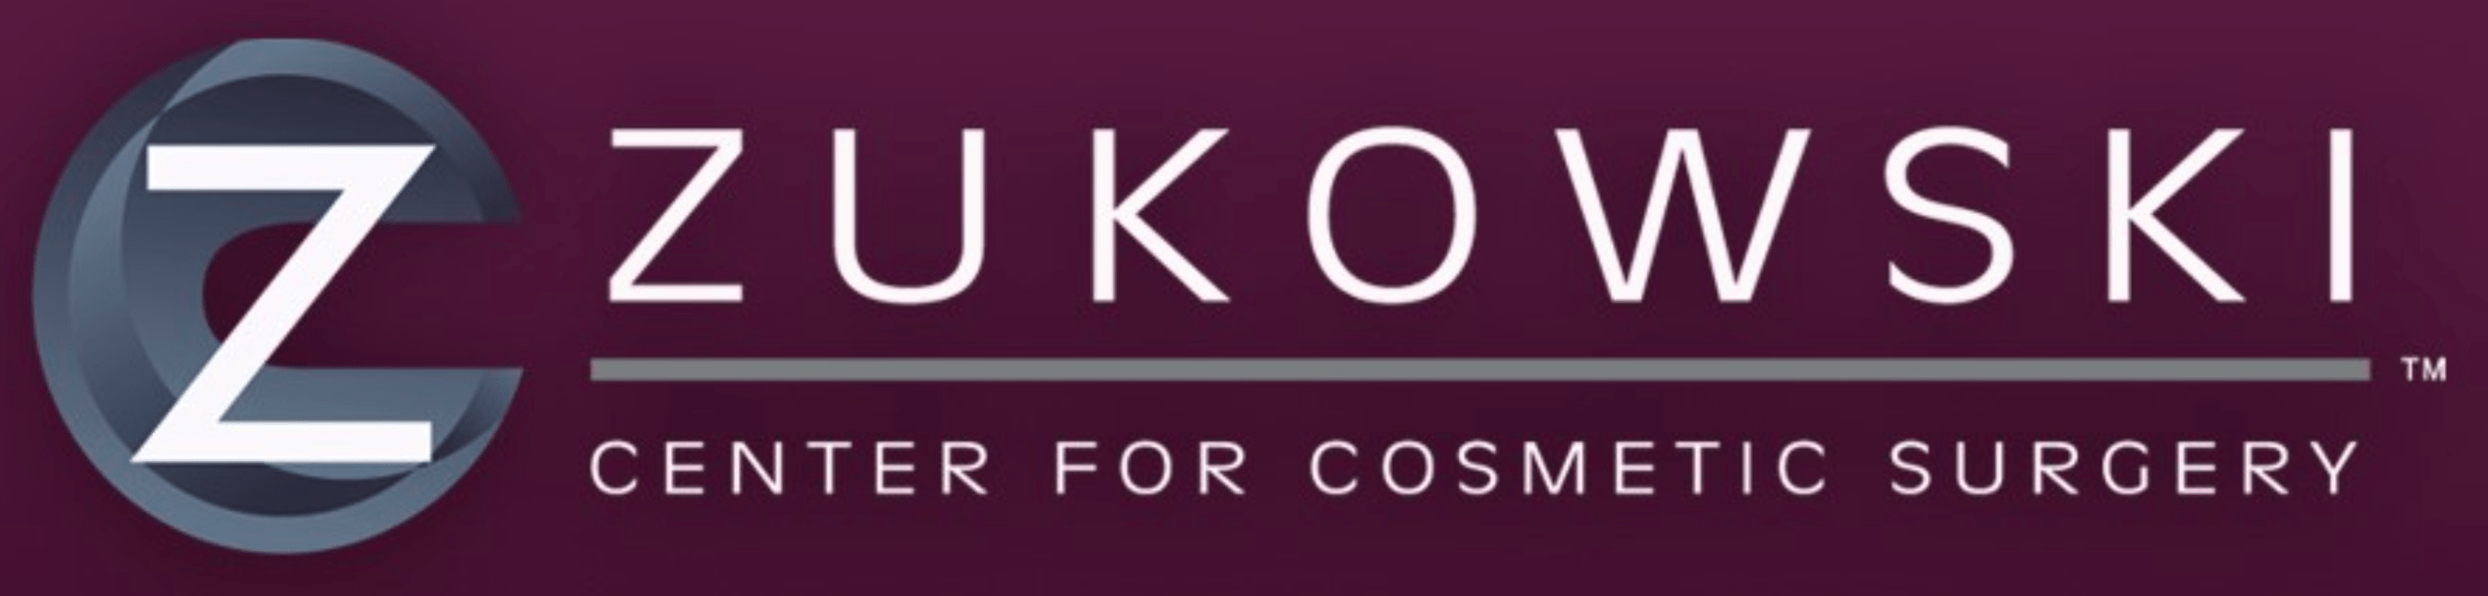 Zukowski Center for Cosmetic Suergery